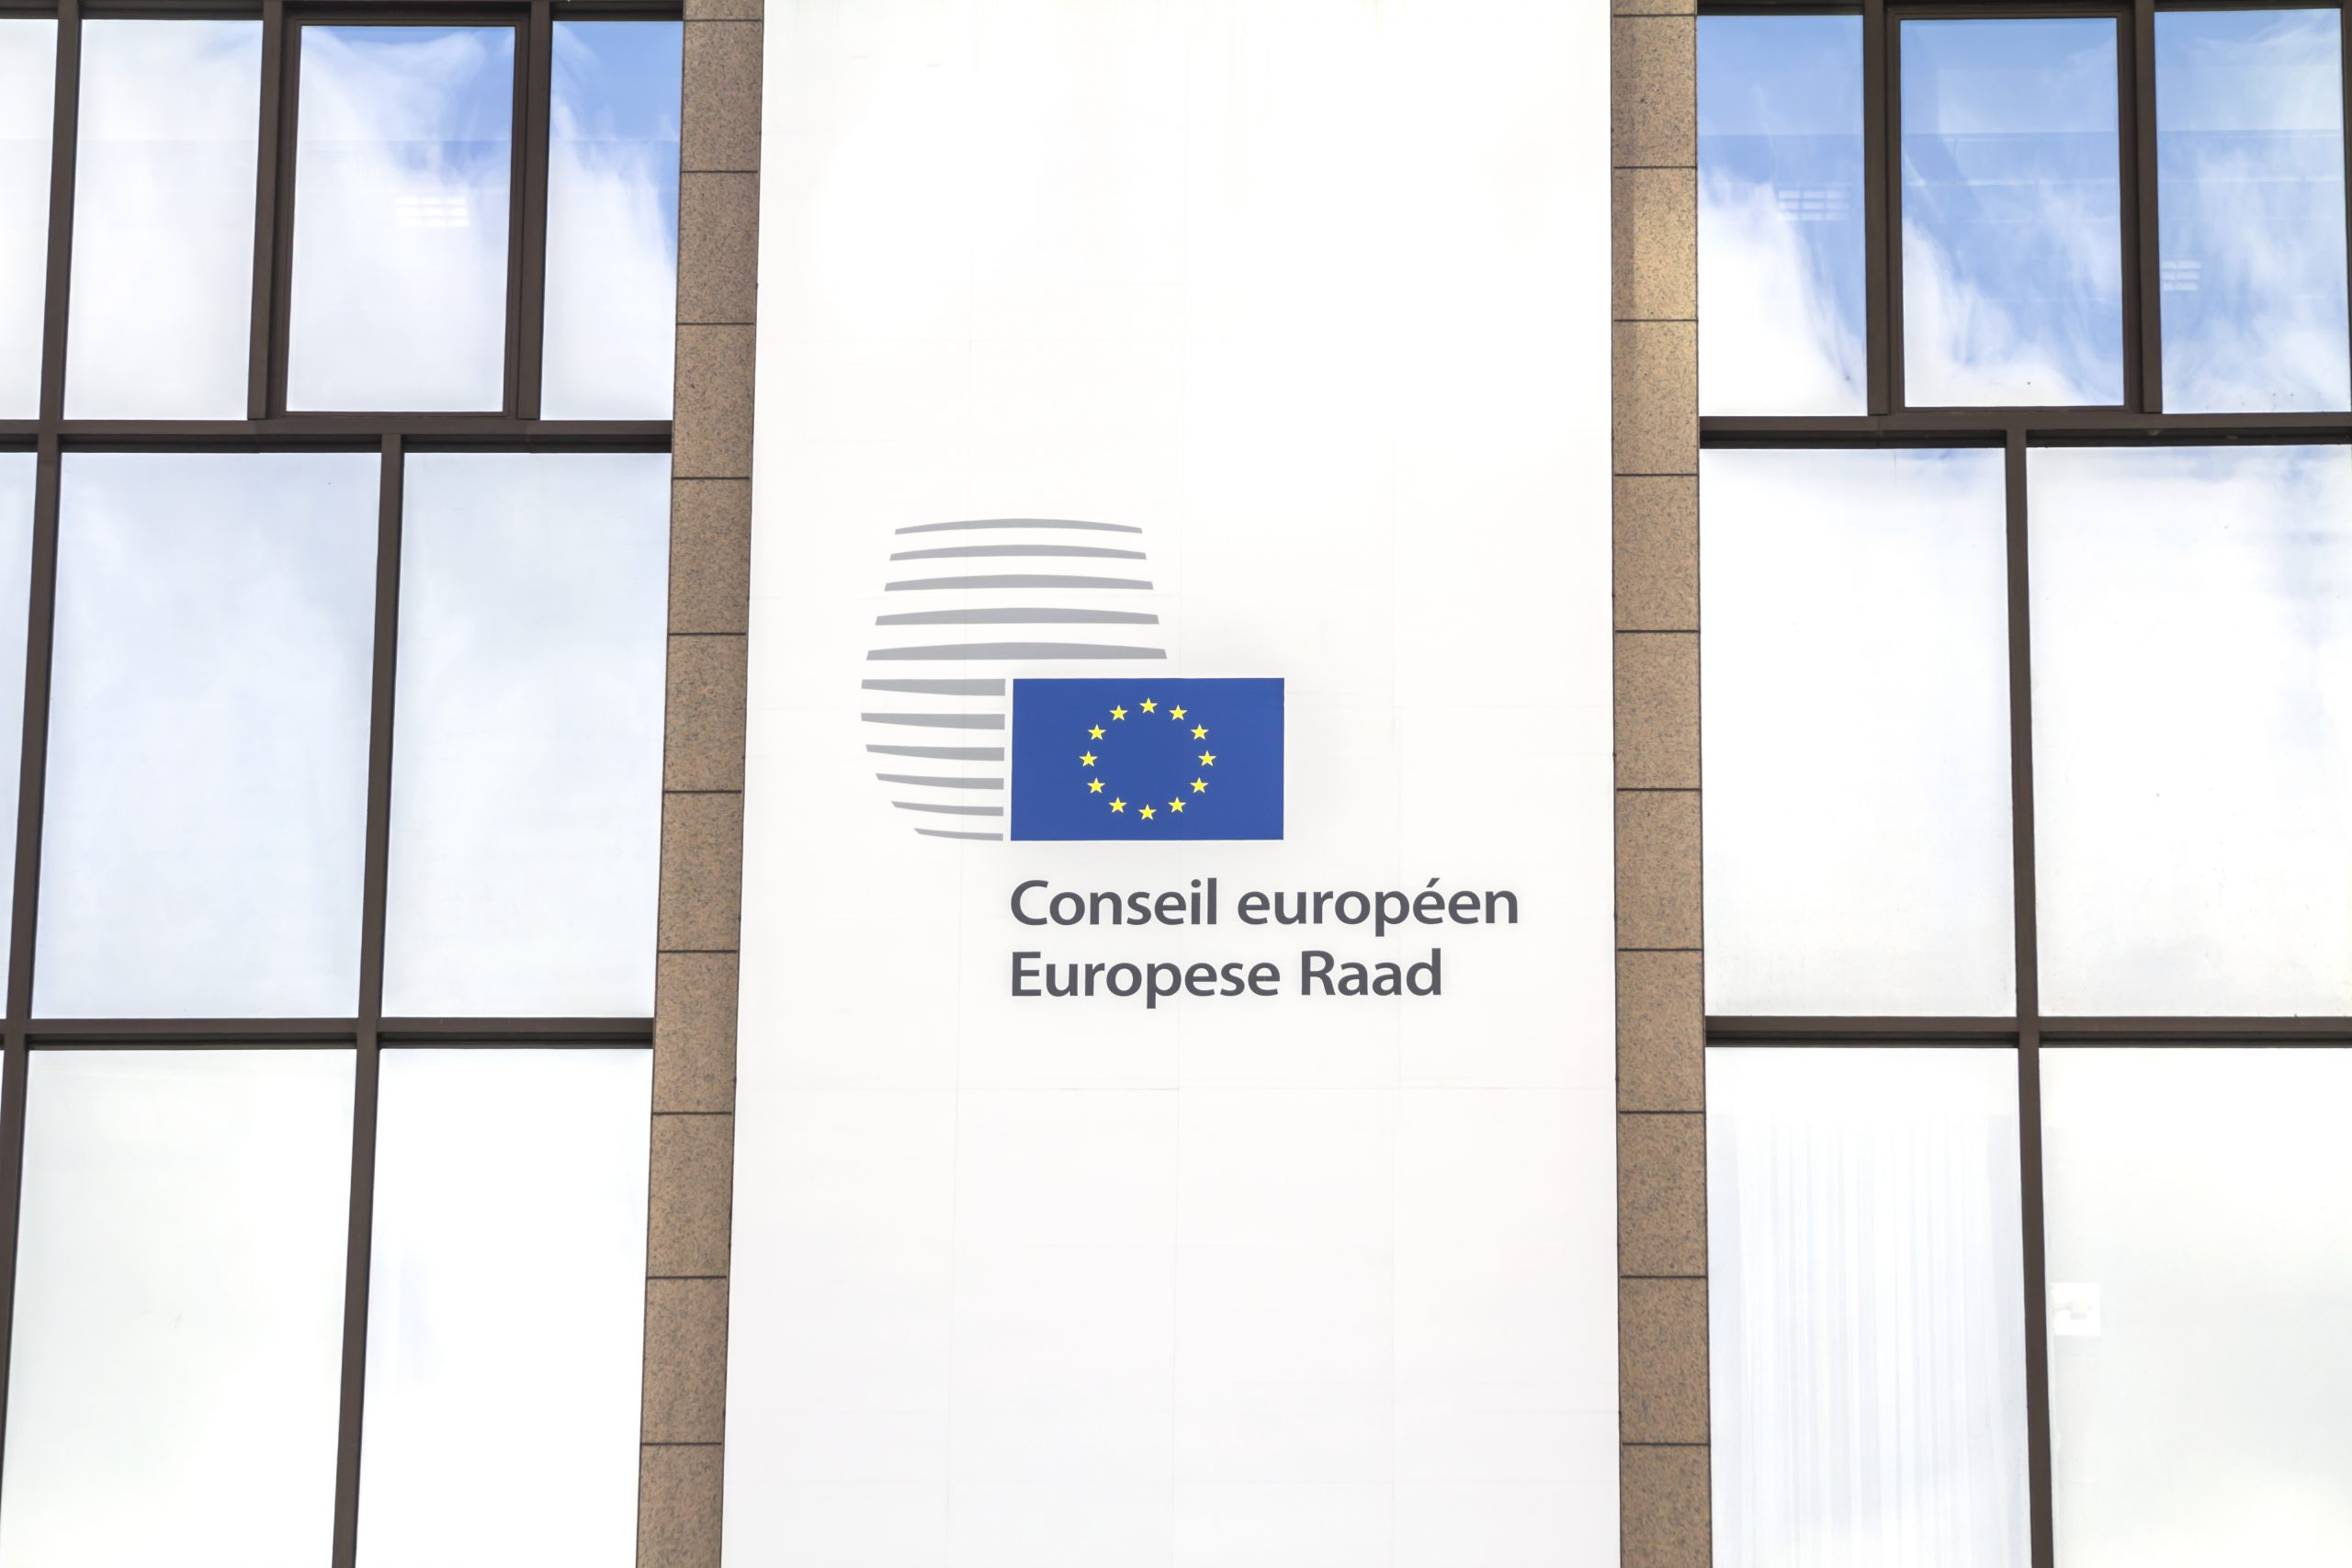 Brussels, Belgium – July 7, 2019: Europa Building in Brussels, Belgium.The Europa building becomes the home of the Council of the European Union and the European Council from 2017.